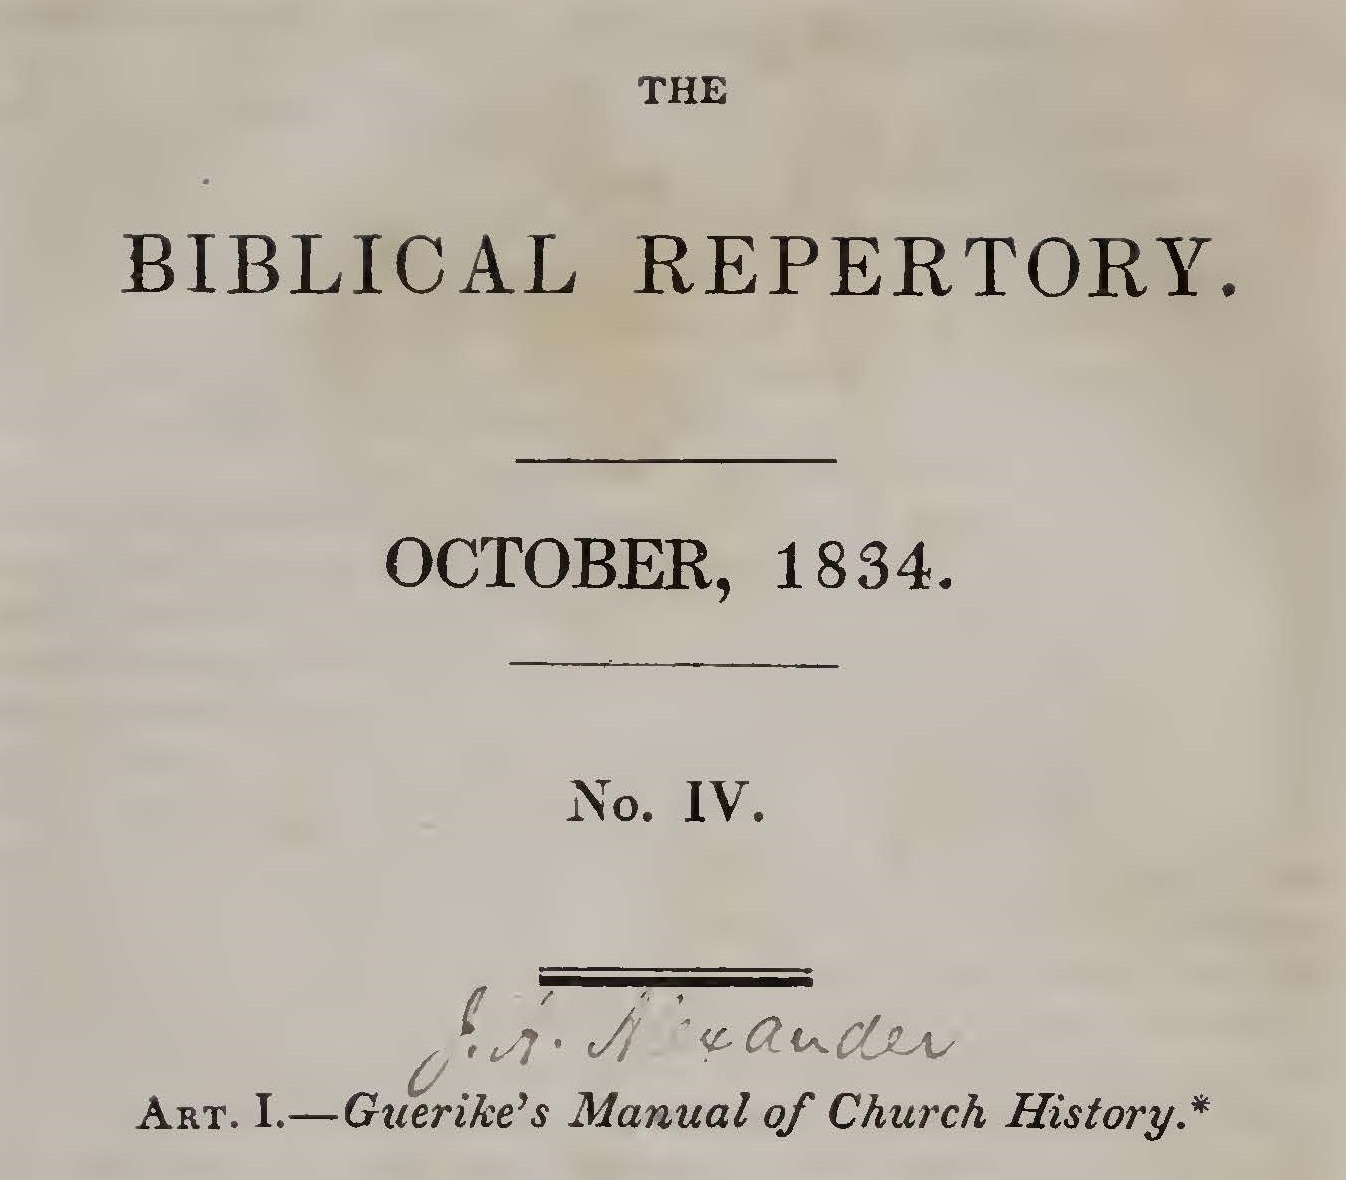 Alexander, Joseph Addison, Guerike's Manual of Church History Title Page.jpg